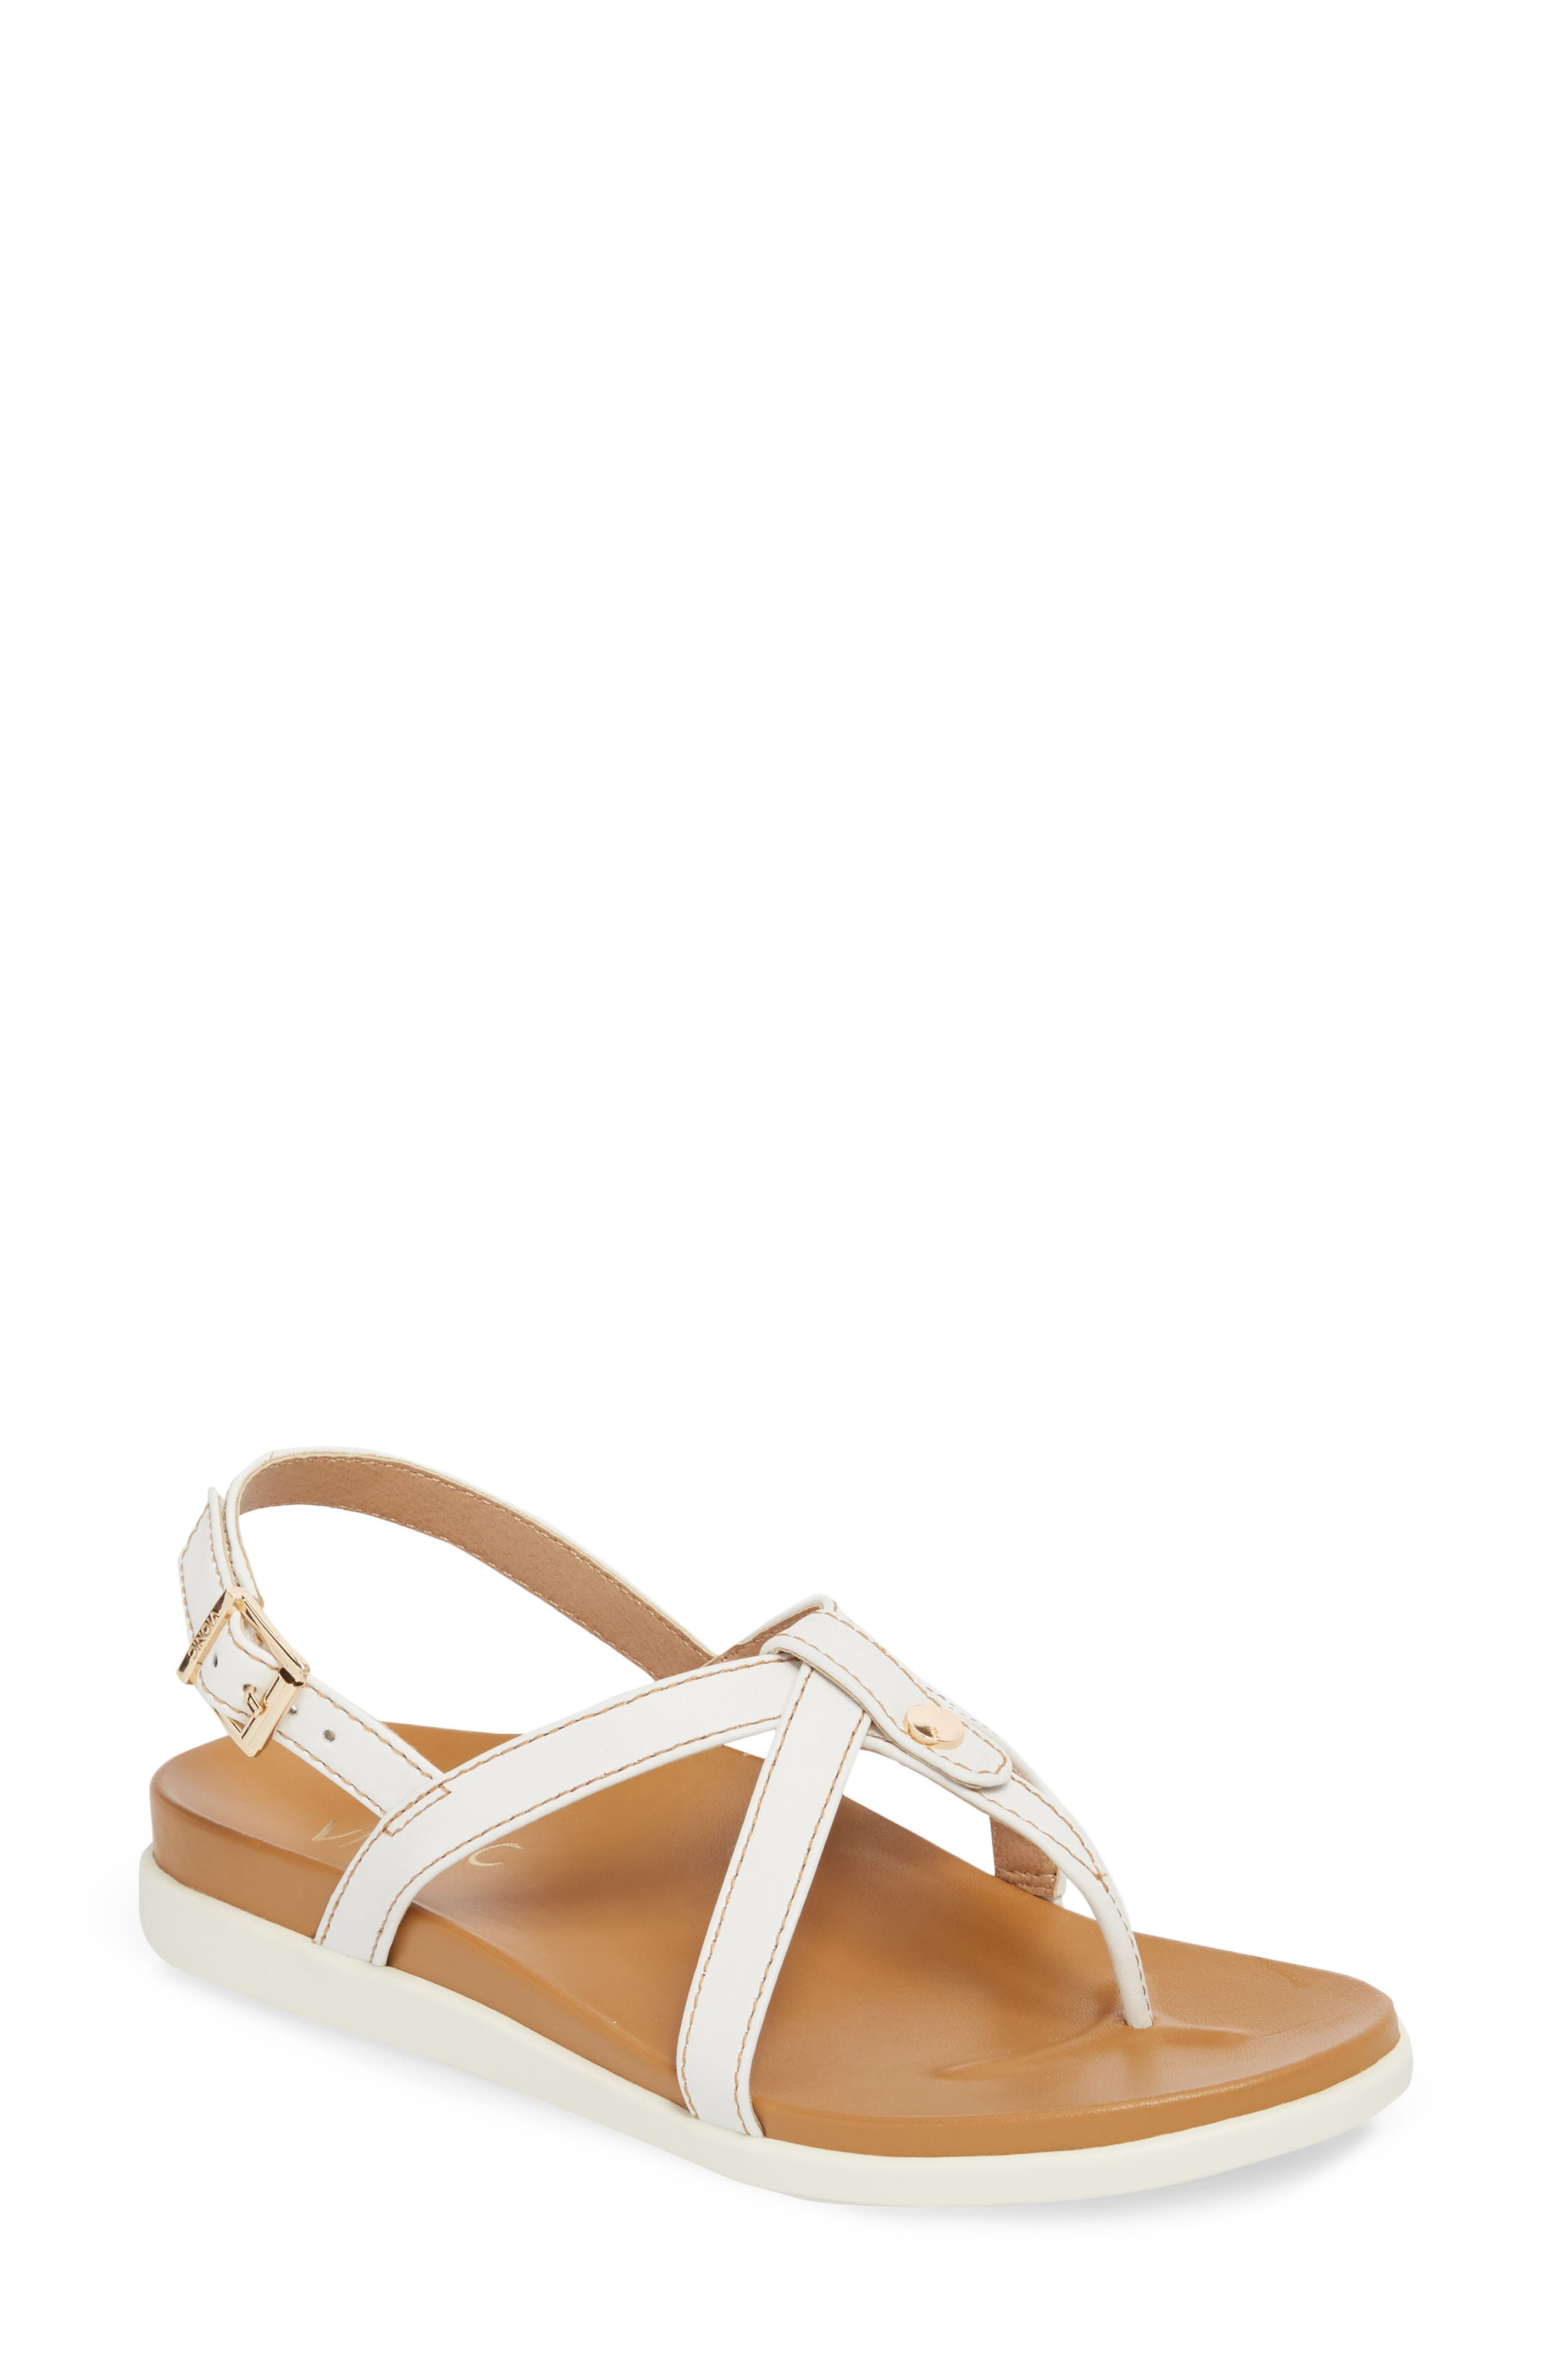 Veranda Sandal,                             Main thumbnail 1, color,                             White Leather